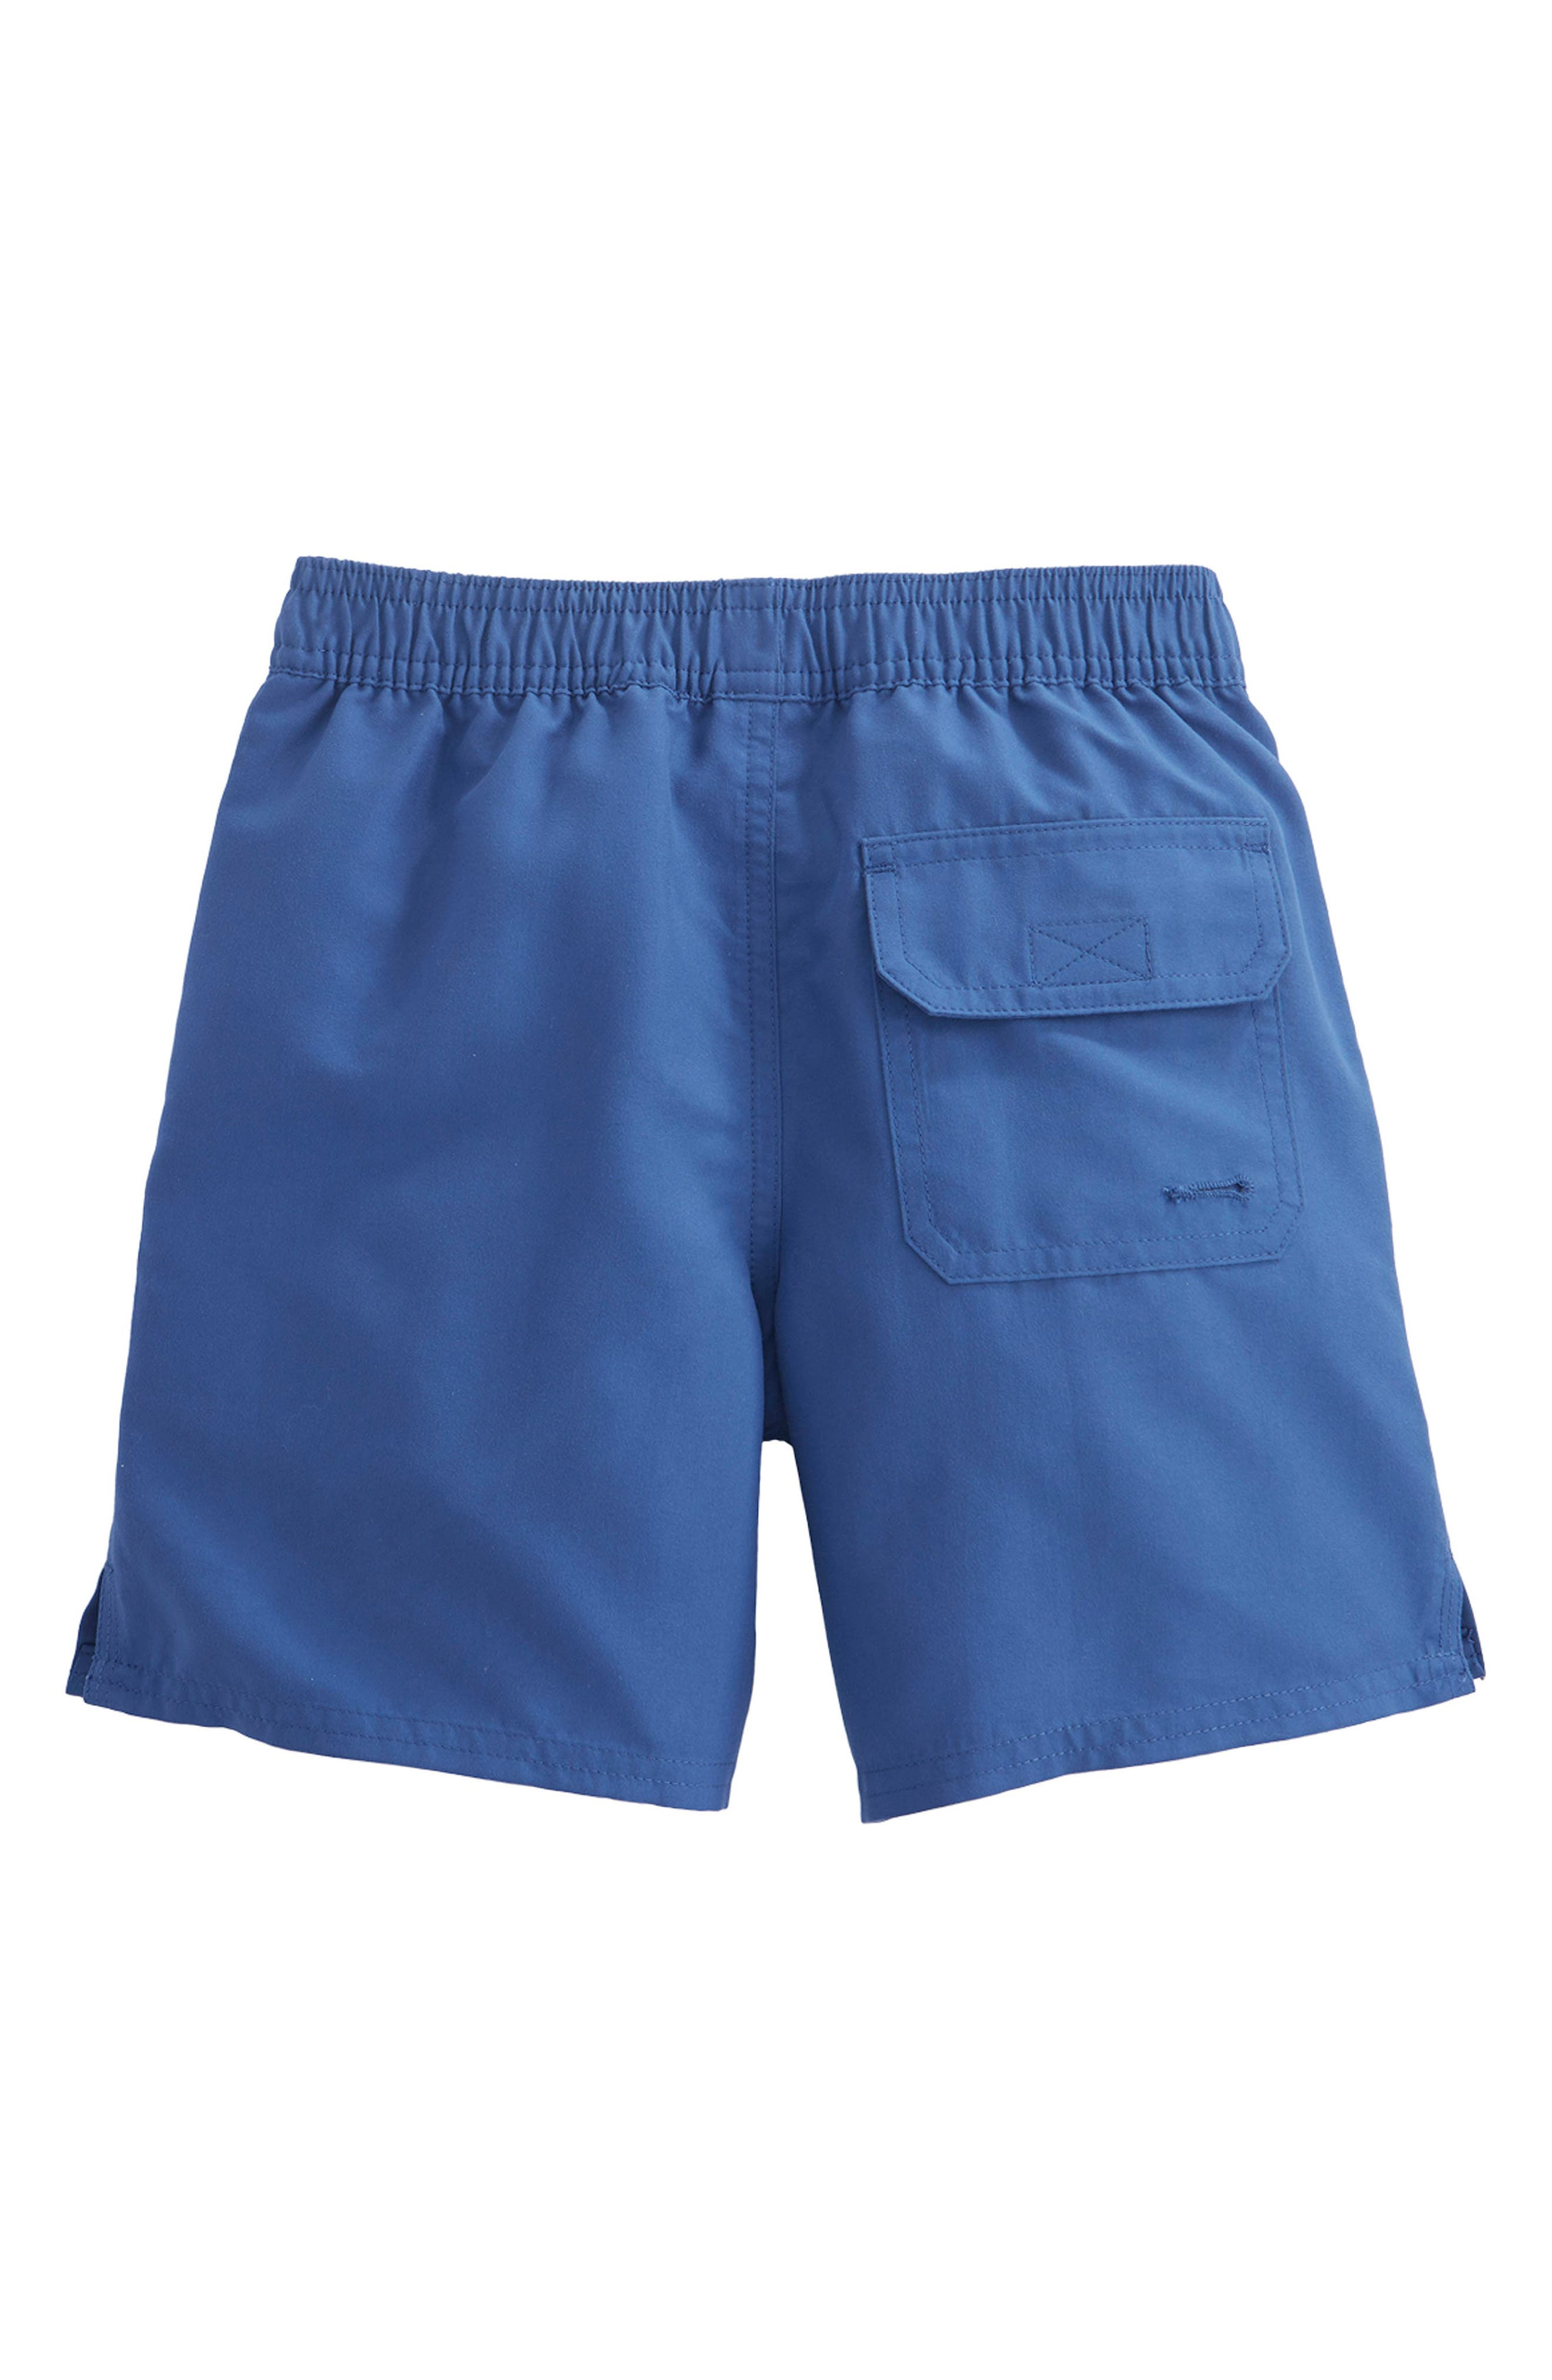 Alternate Image 2  - vineyard vines Bungalow Board Shorts (Toddler Boys & Little Boys)